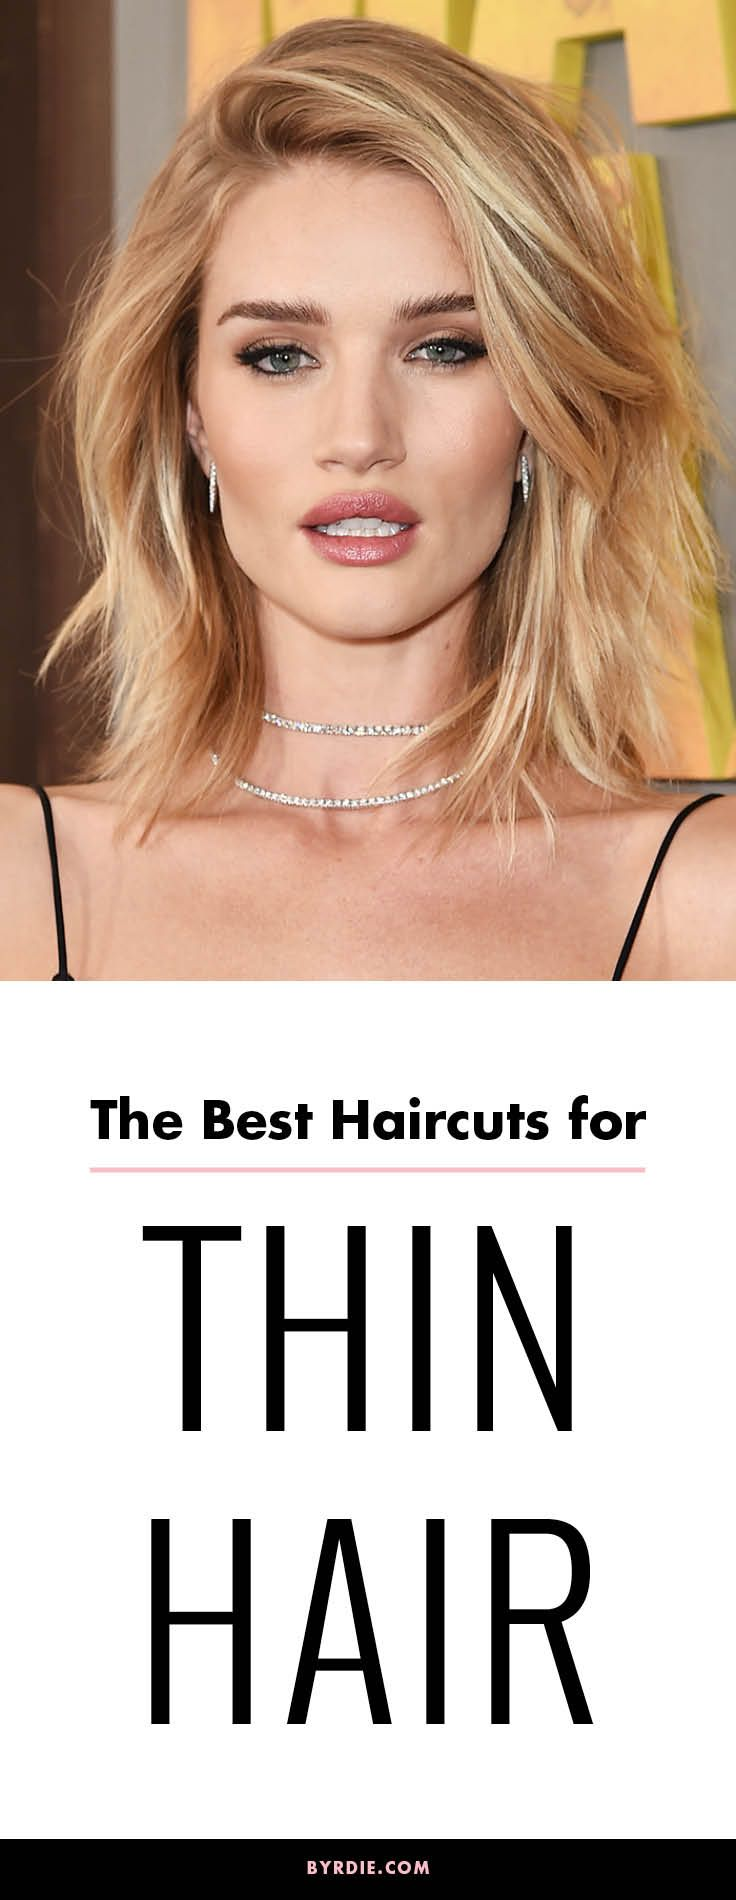 Its Official These Are The All Time Best Haircuts For Thin Hair